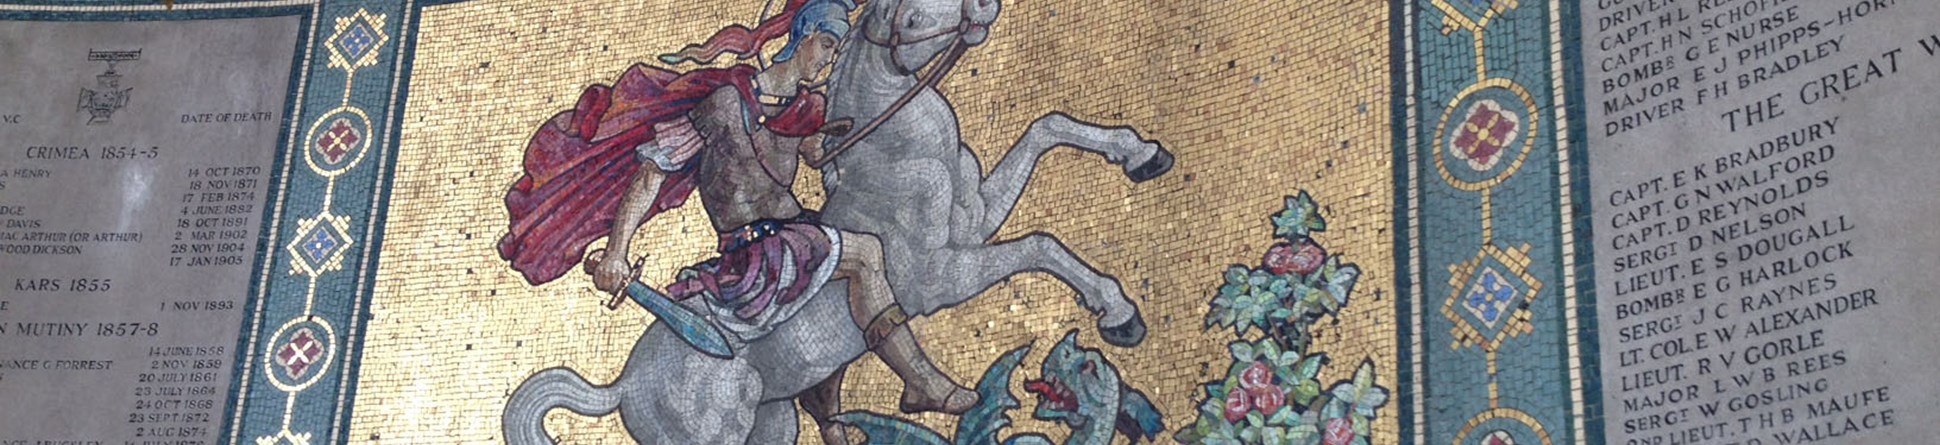 Mosaic of St George on a white horse slaying a dragon